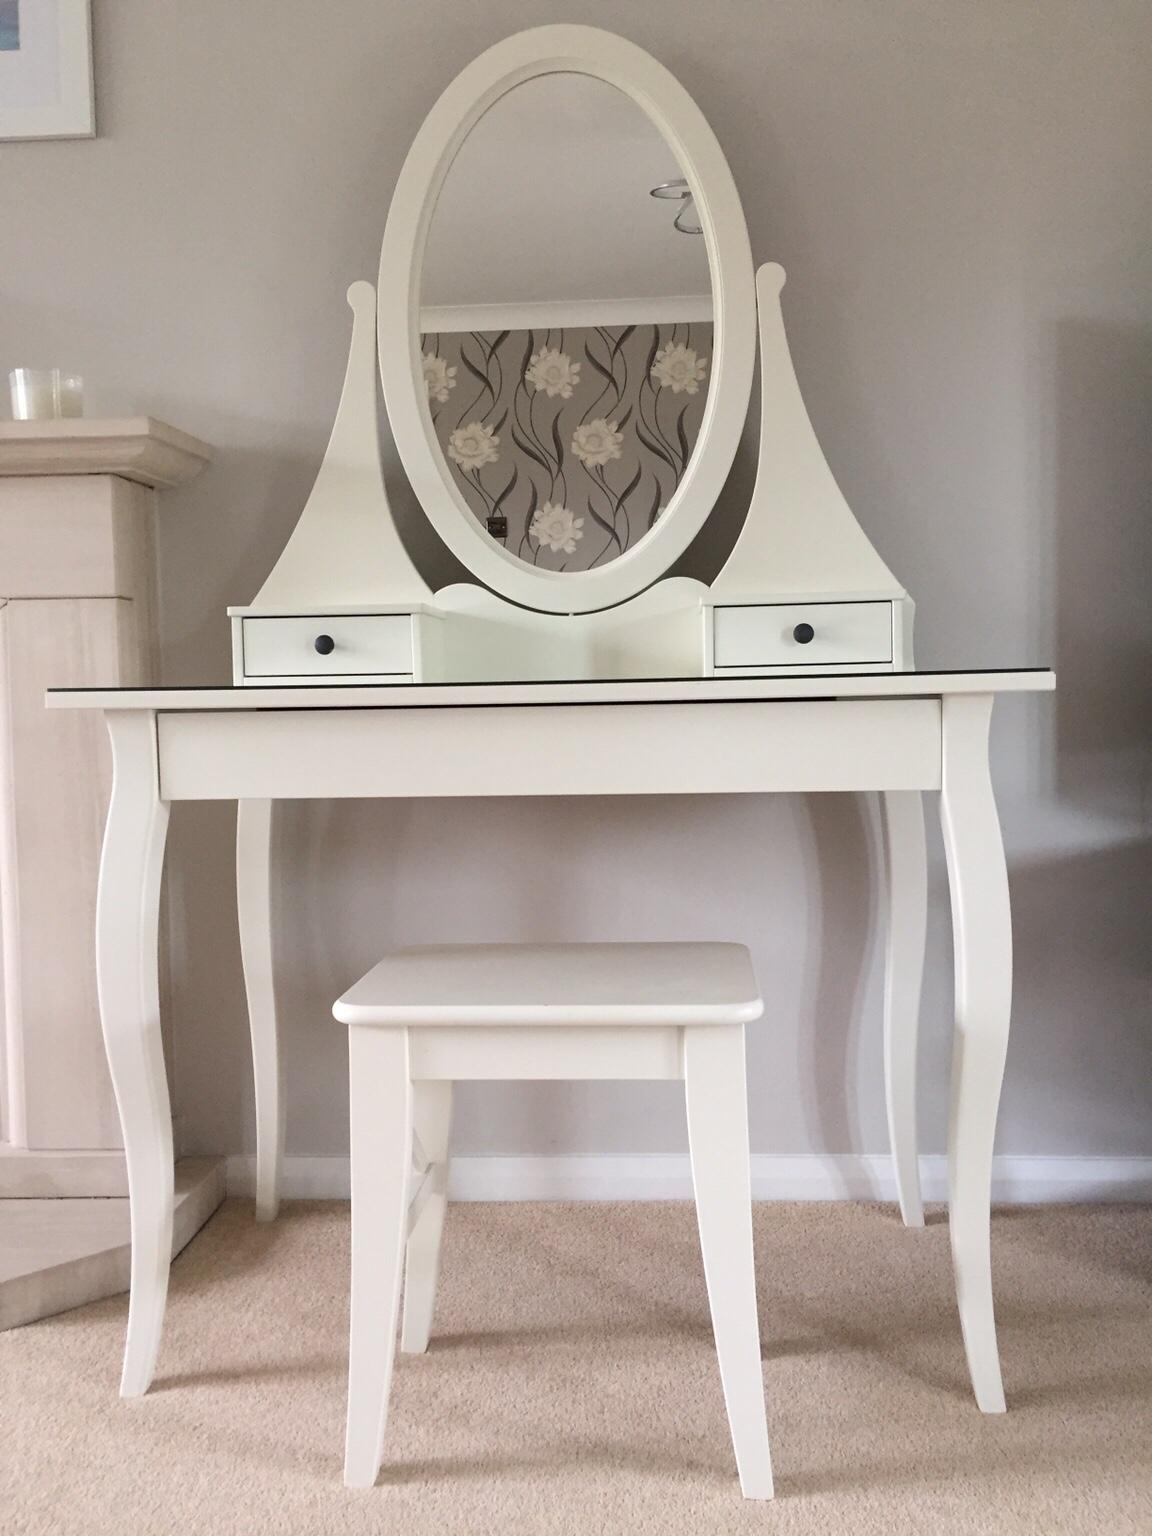 Dressing Table With Mirror And Stool: Hemnes IKEA Dressing Table Mirror & Stool In HD4 Kirklees